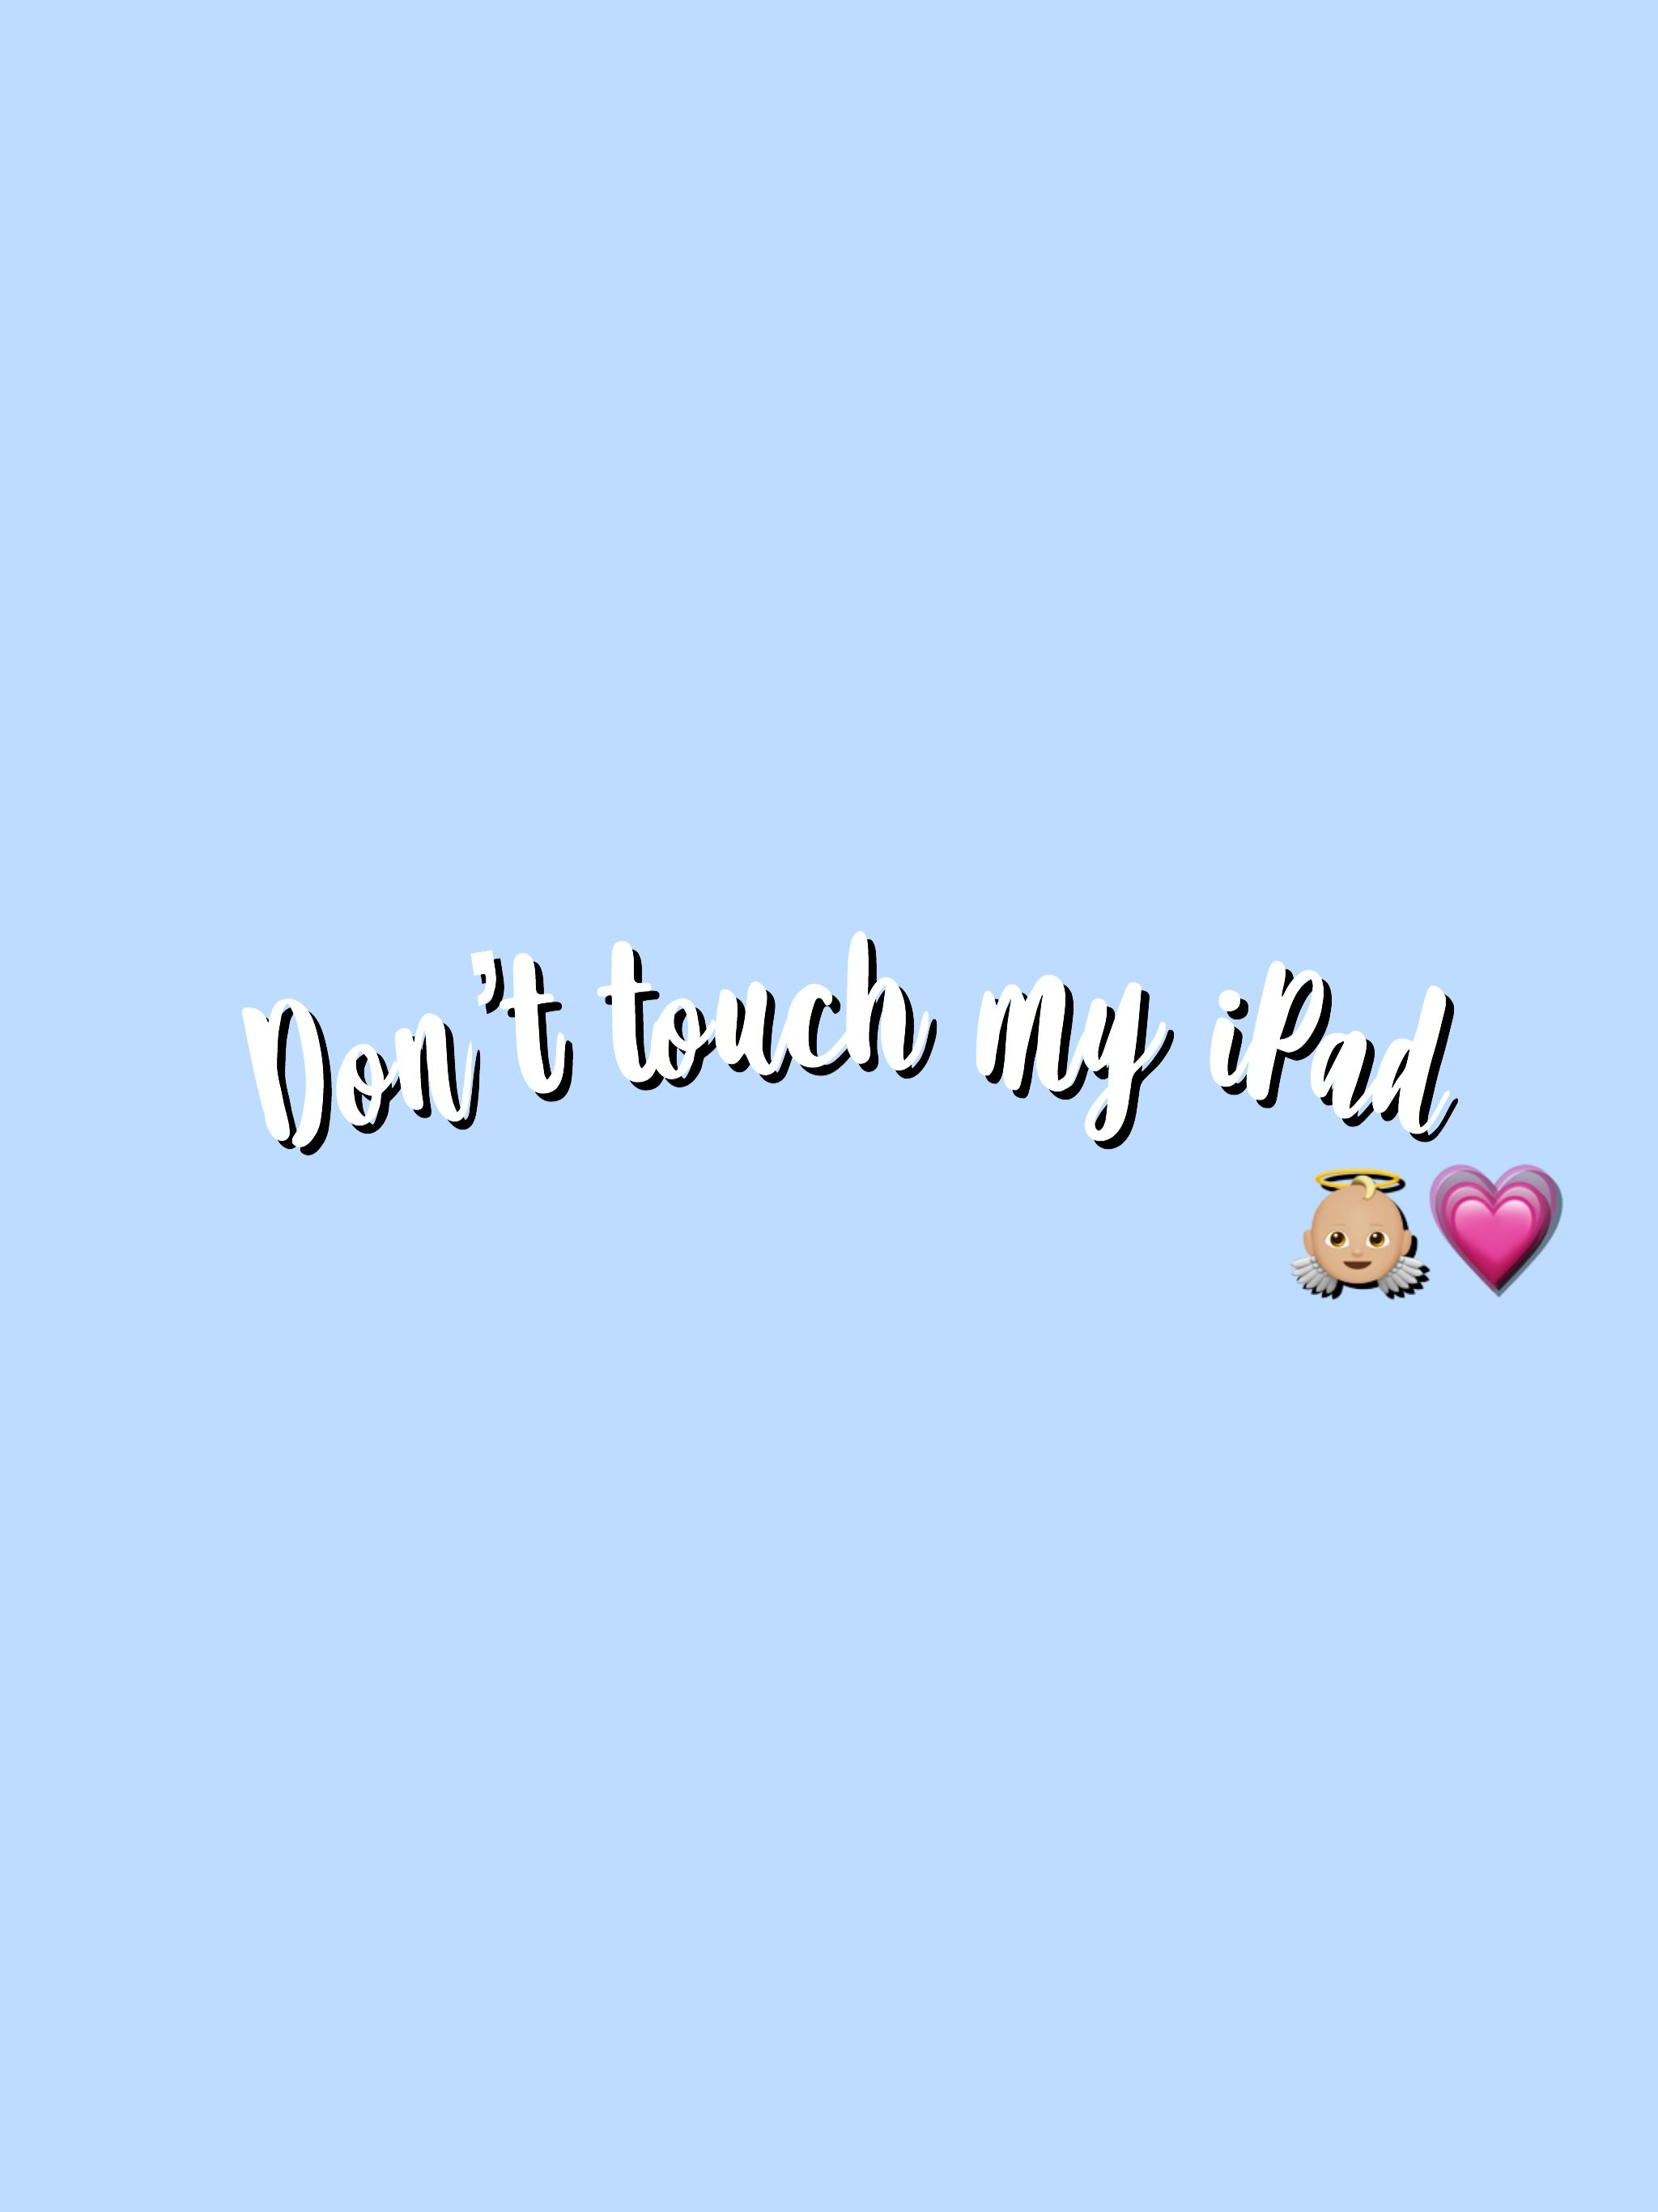 Pinterest Uwuxvscogirl Pretty Wallpaper Iphone Cute Wallpapers For Ipad Dont Touch My Phone Wallpapers